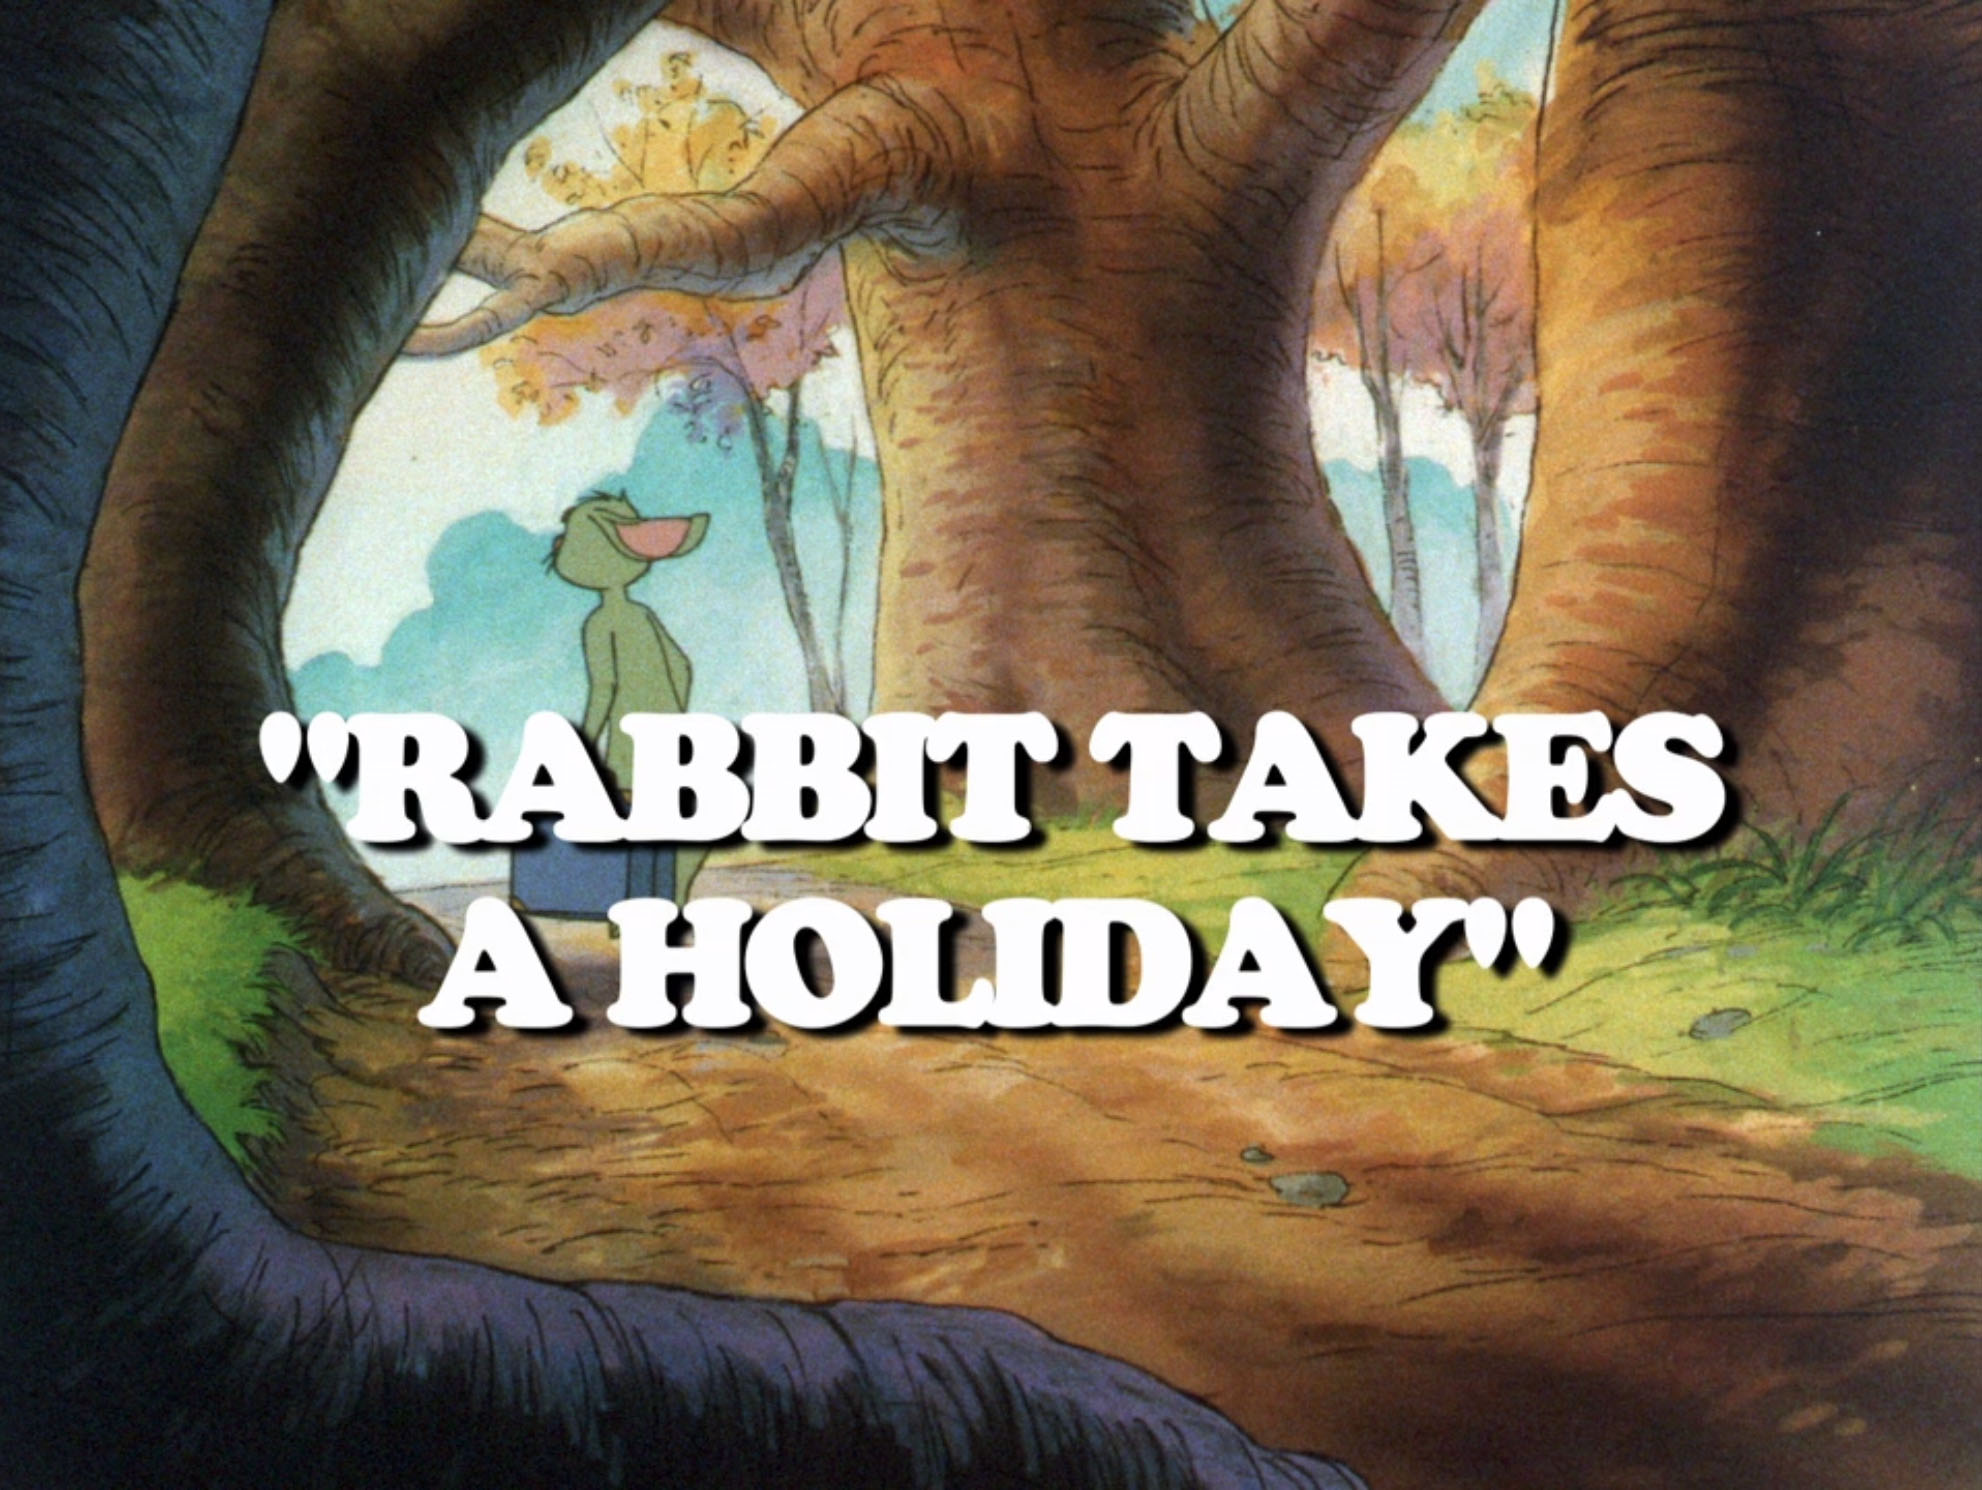 File:Rabbittakesaholiday.jpg